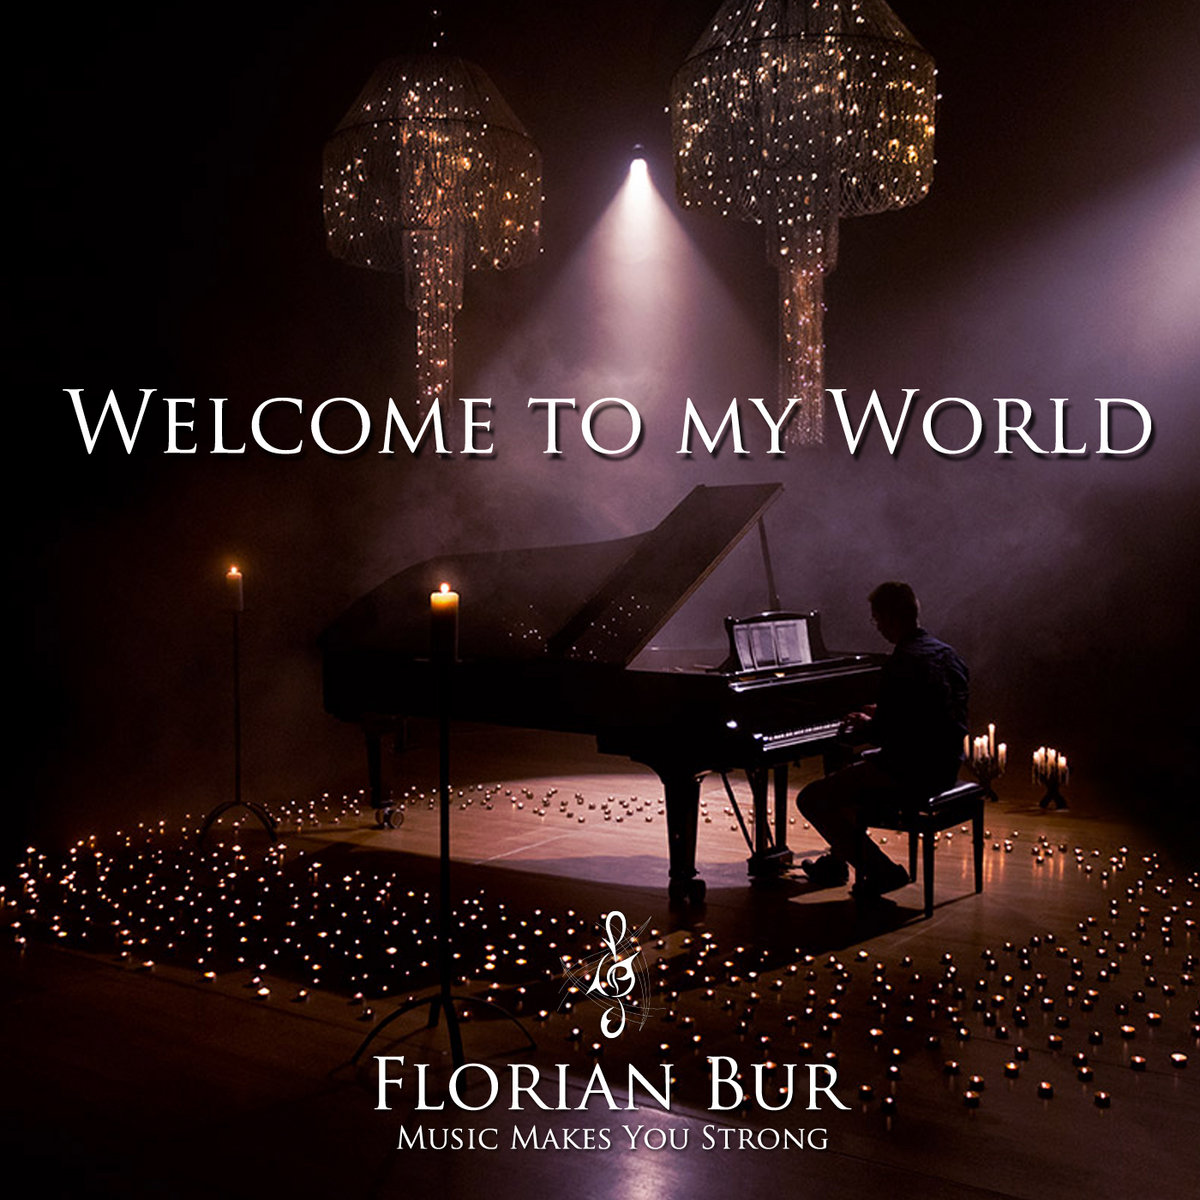 Welcome To My World Florian Bur